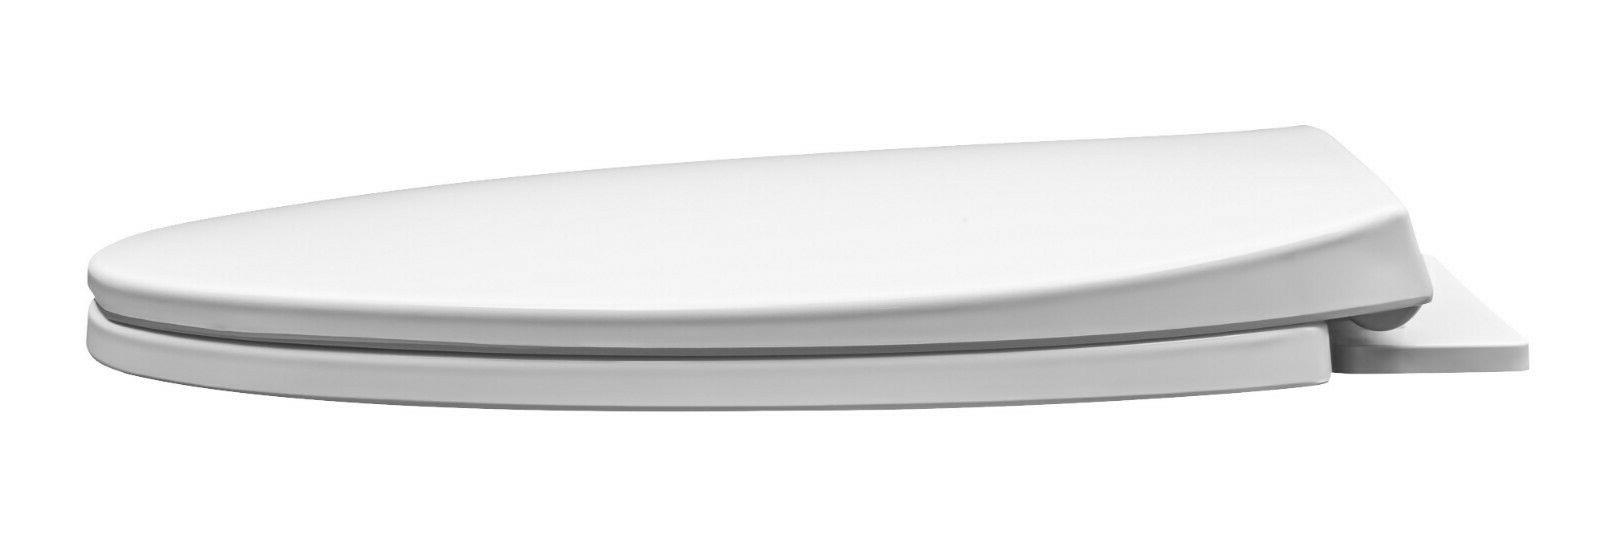 Winfield Duty Toilet Seat Elongated, & Clean, Close